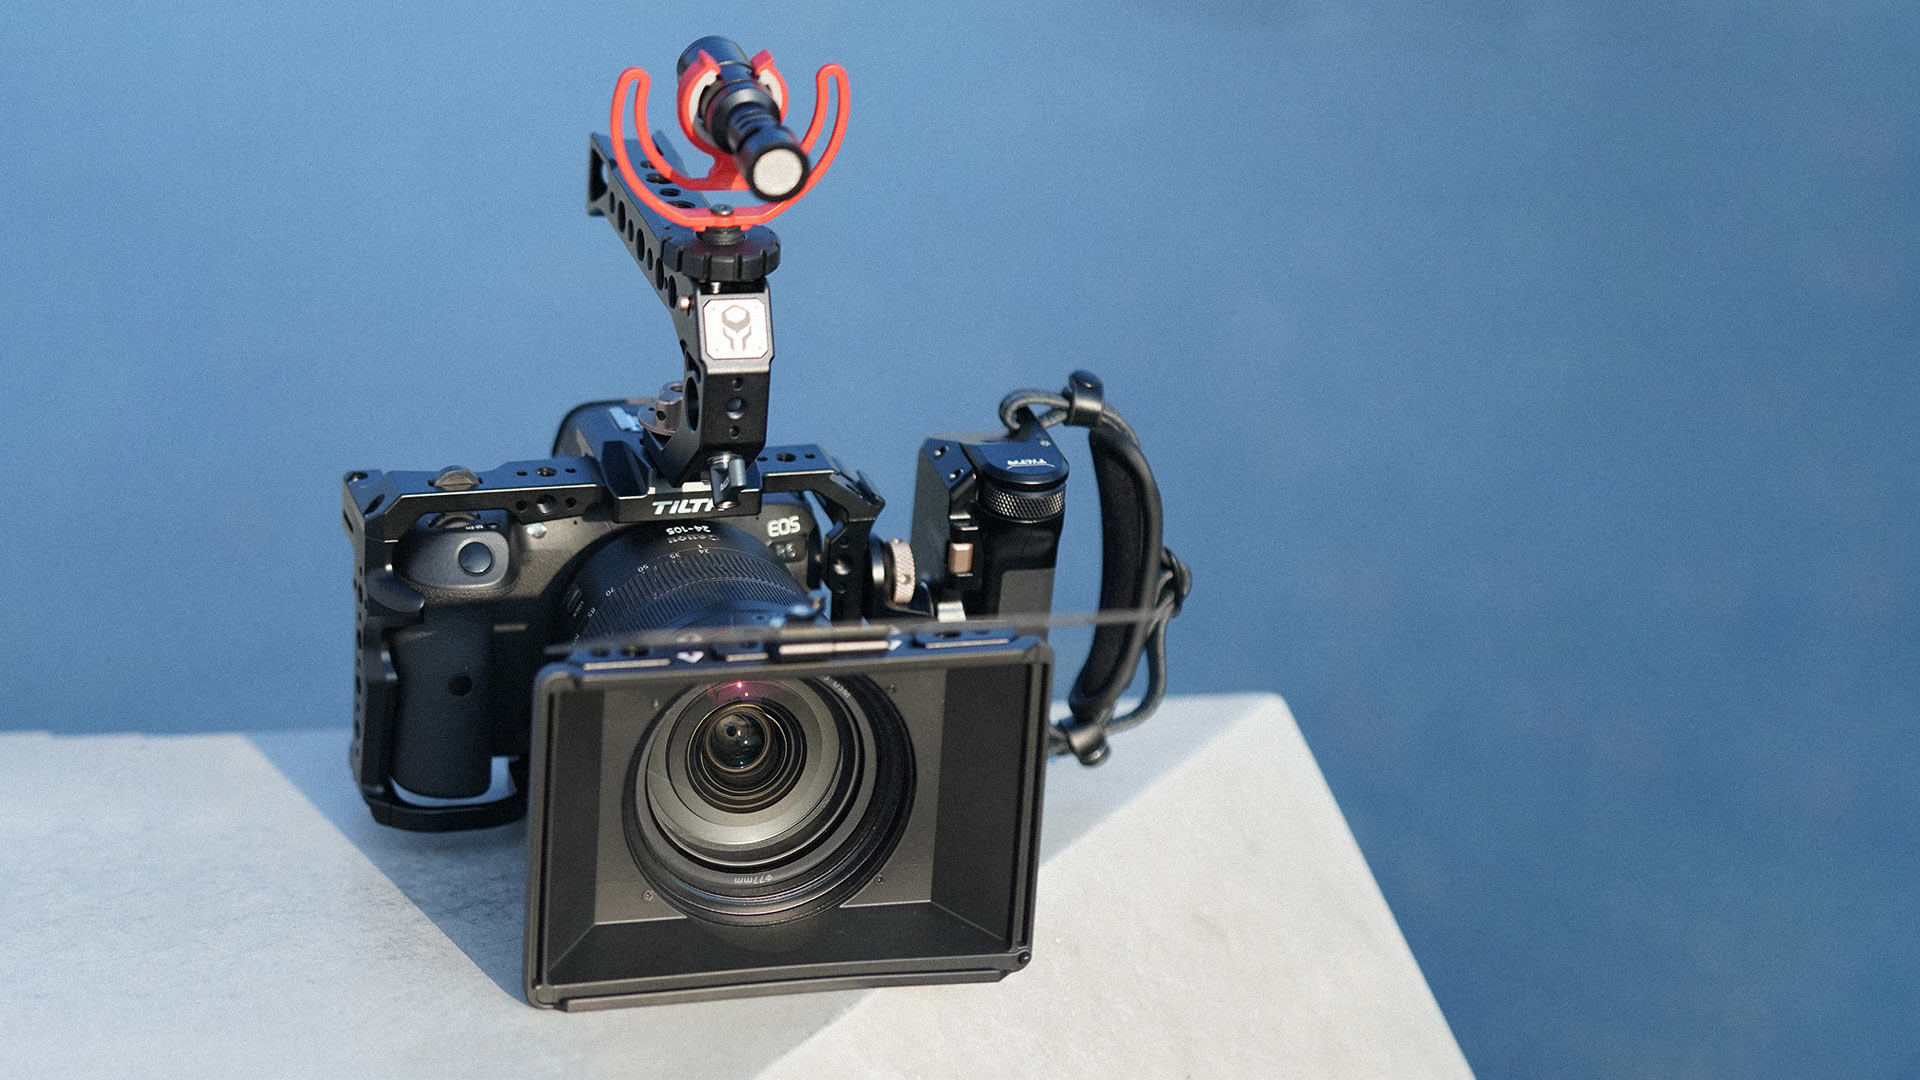 canon r5/r6 cage by tiltaing